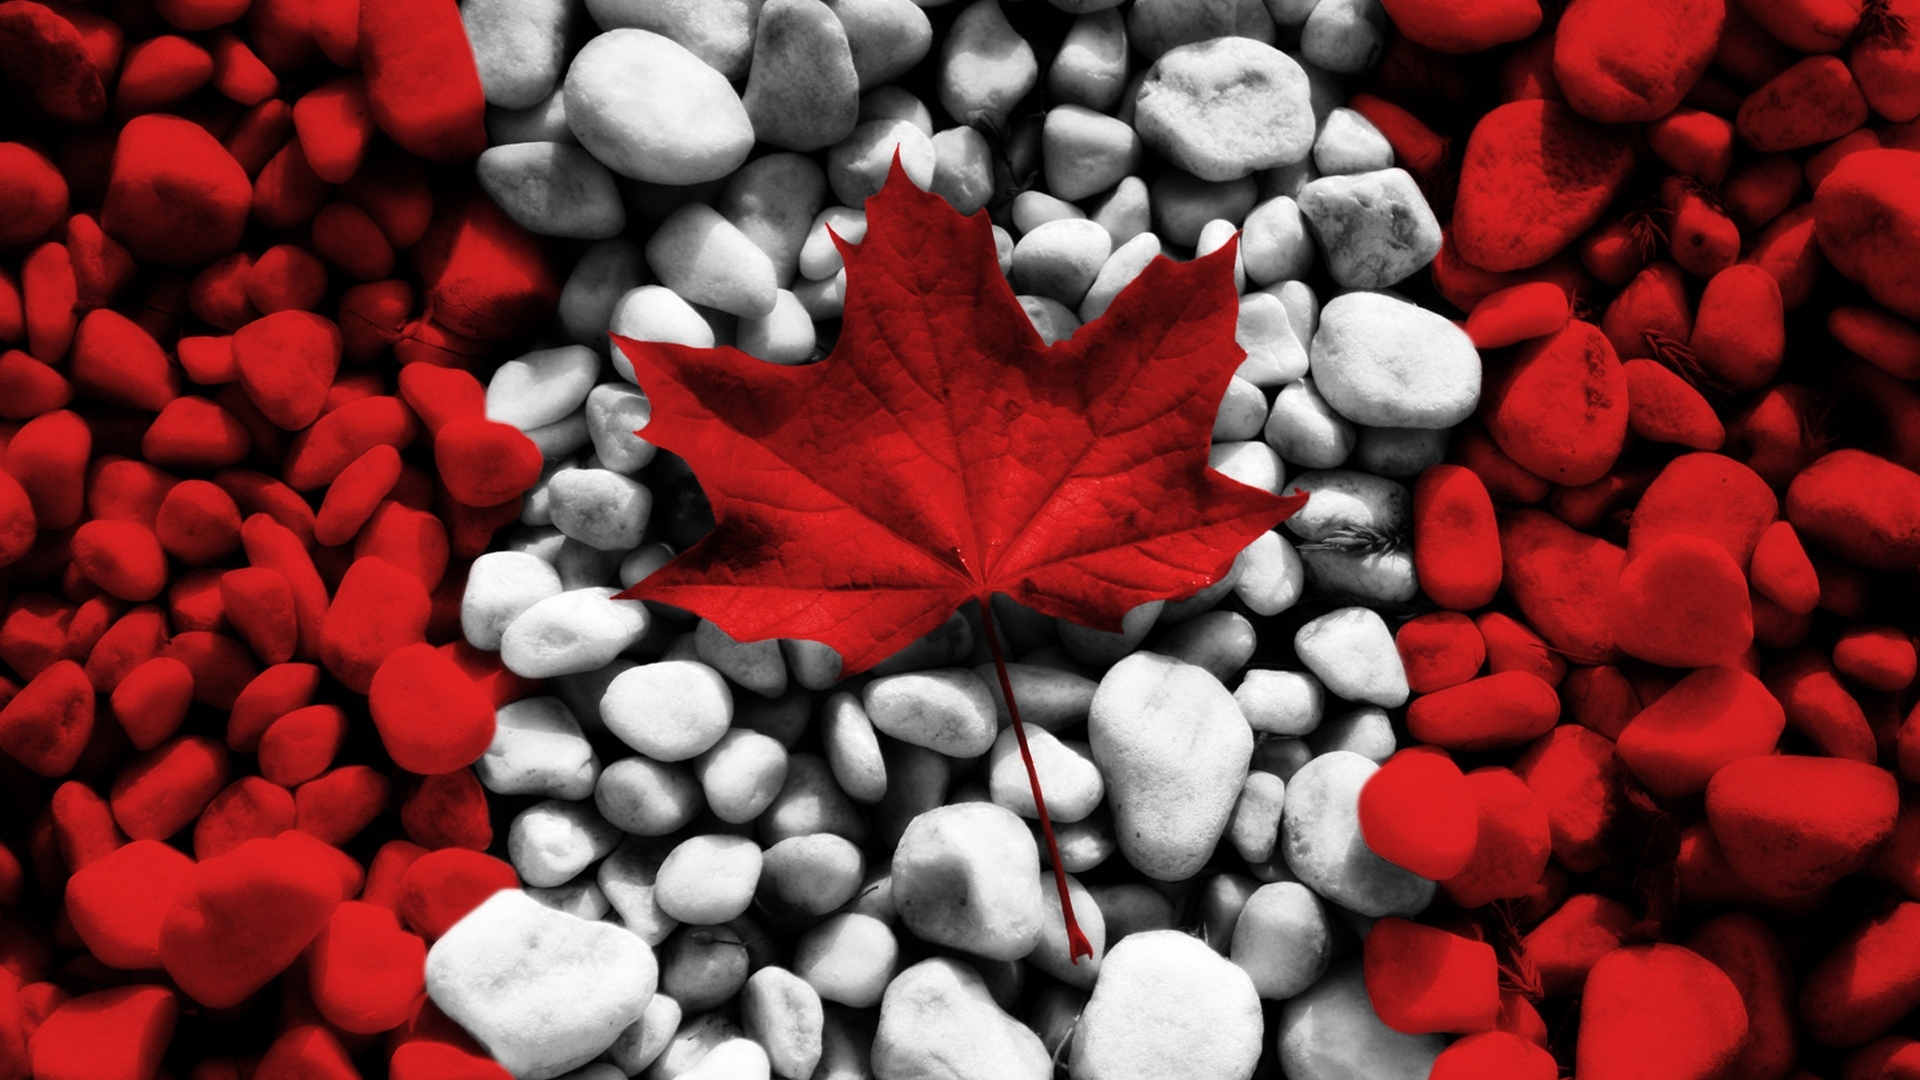 pebbles stone canada flag 4k wallpaper